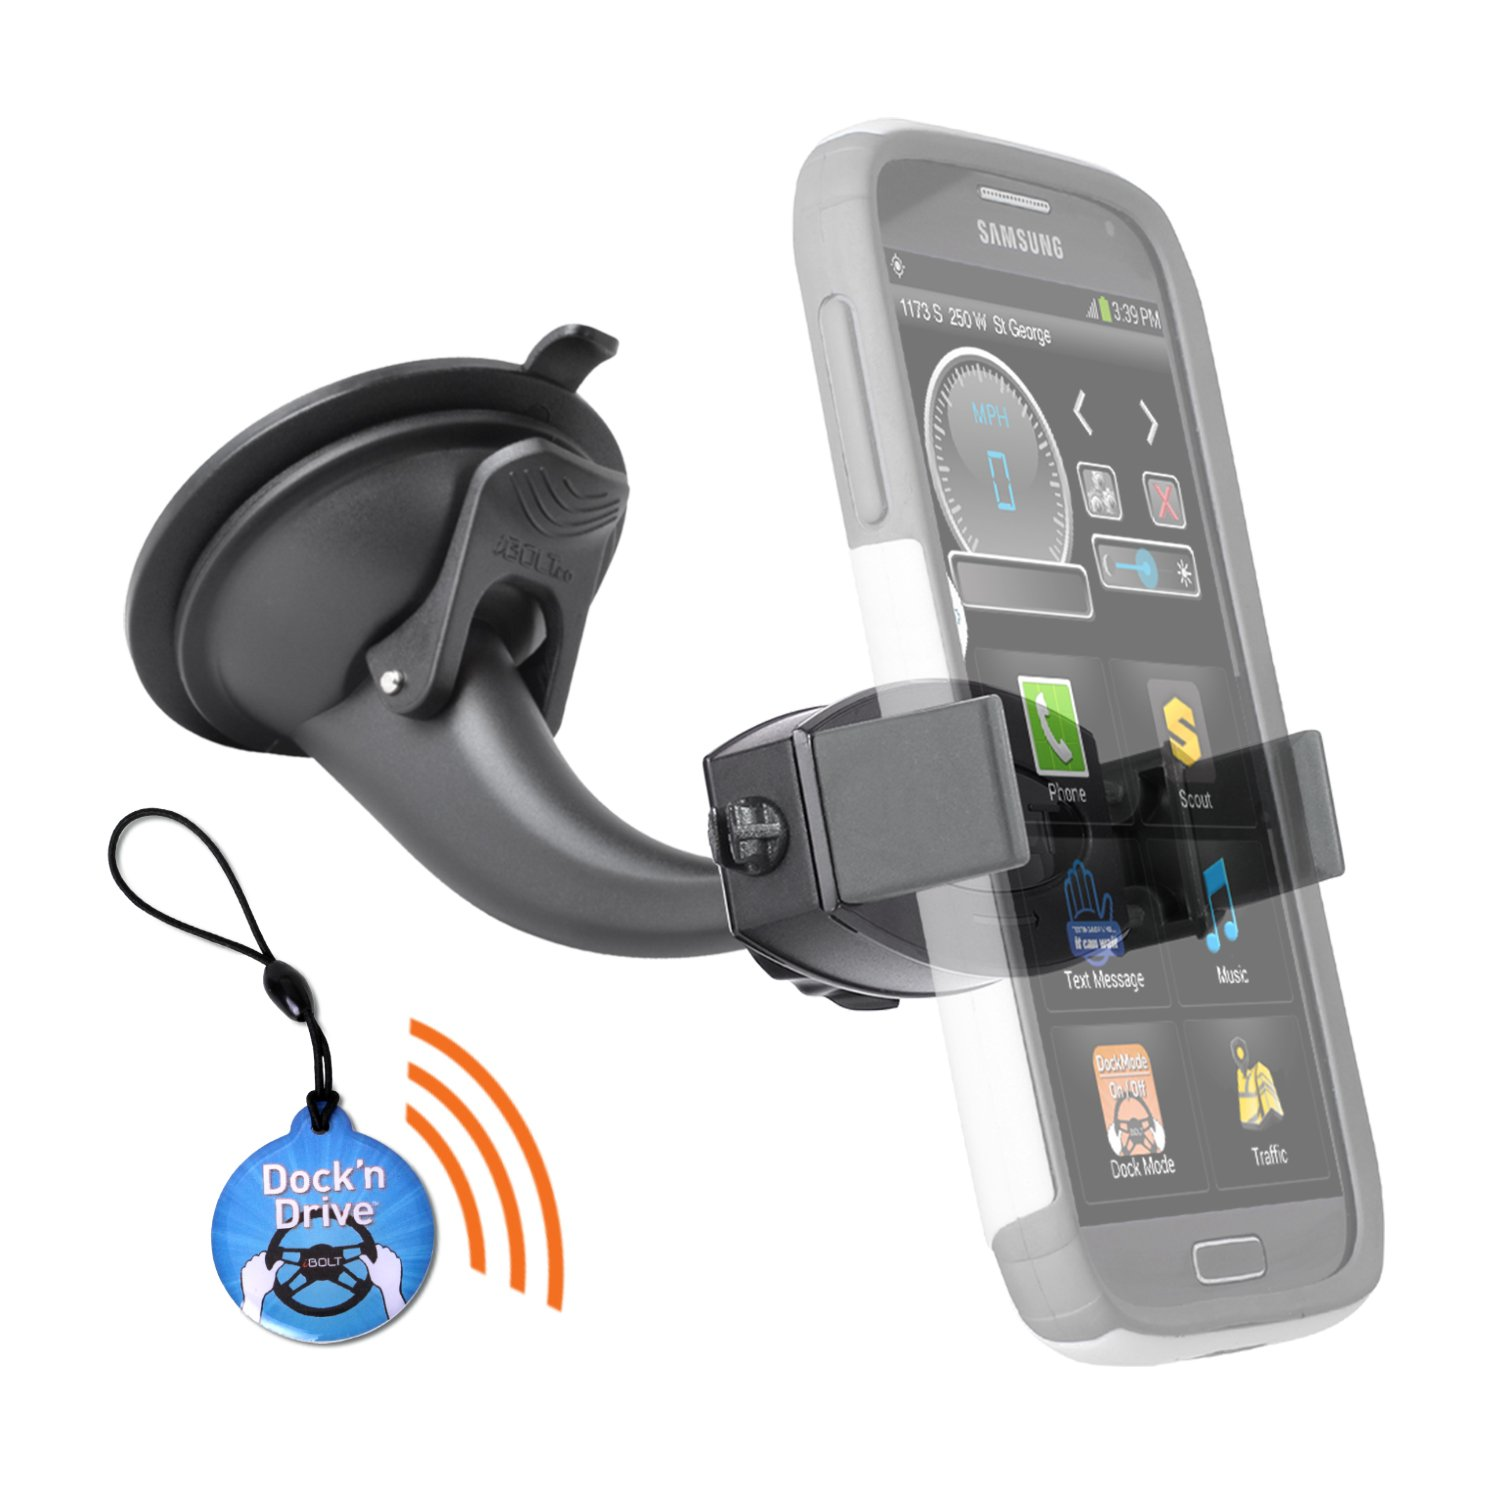 iBOLT miniPro Connect Kit for iPhone, Samsung, HTC, Motorola, Nokia, LG, and Sony.